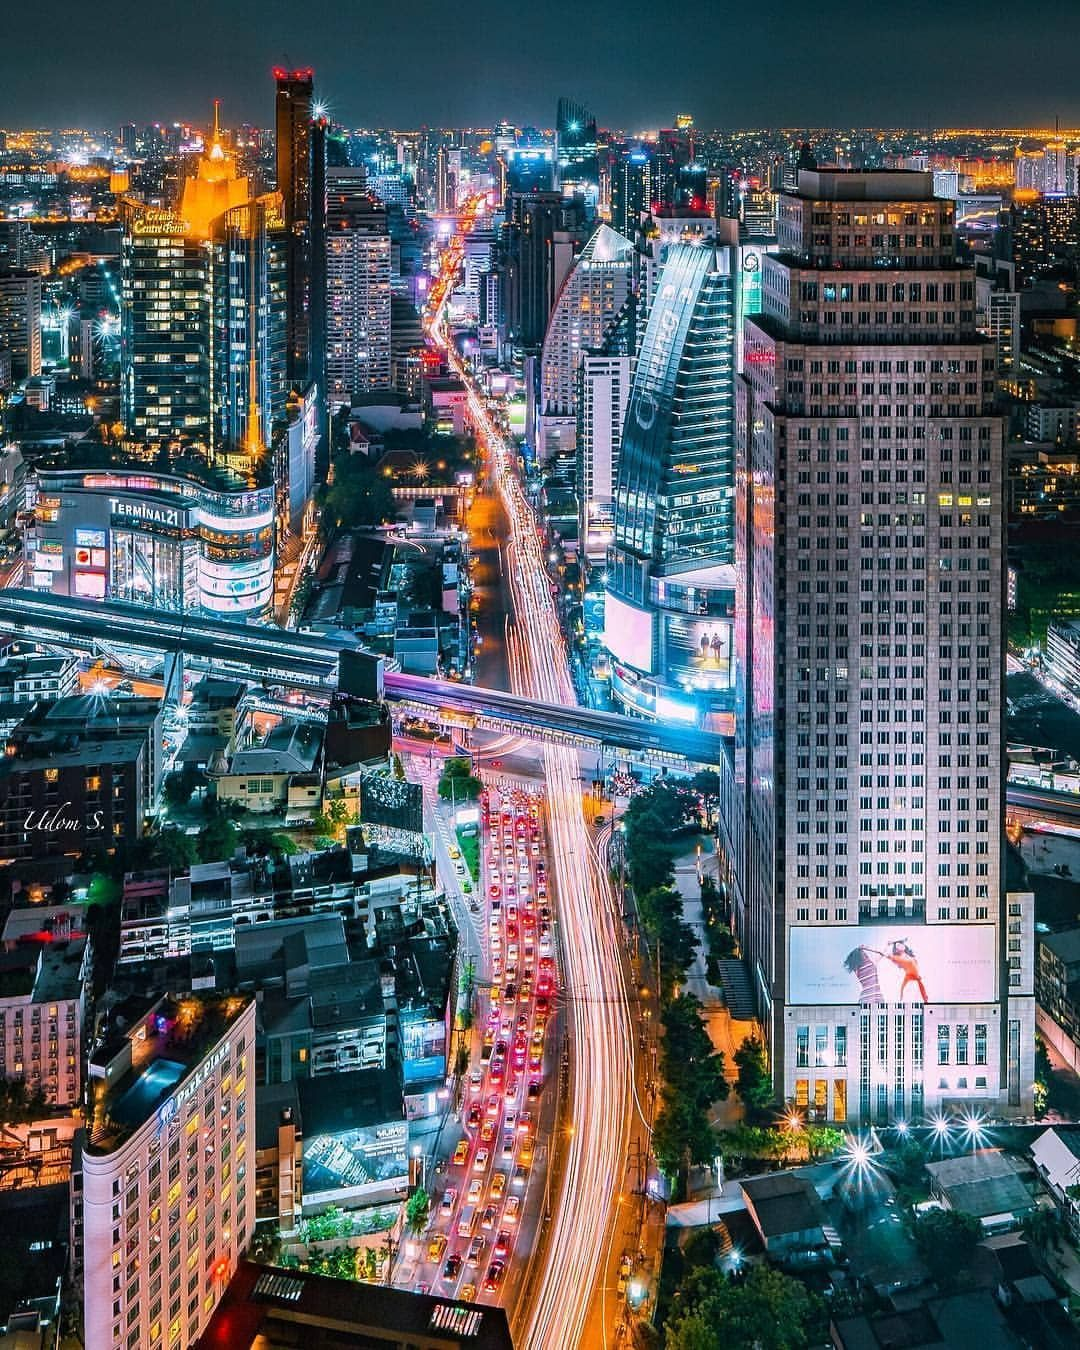 Bangkok Thailand By Oatoasta Follow The Featured Feed For More Tag Your Friends Nightlife Travel Bangkok Travel Bangkok Thailand